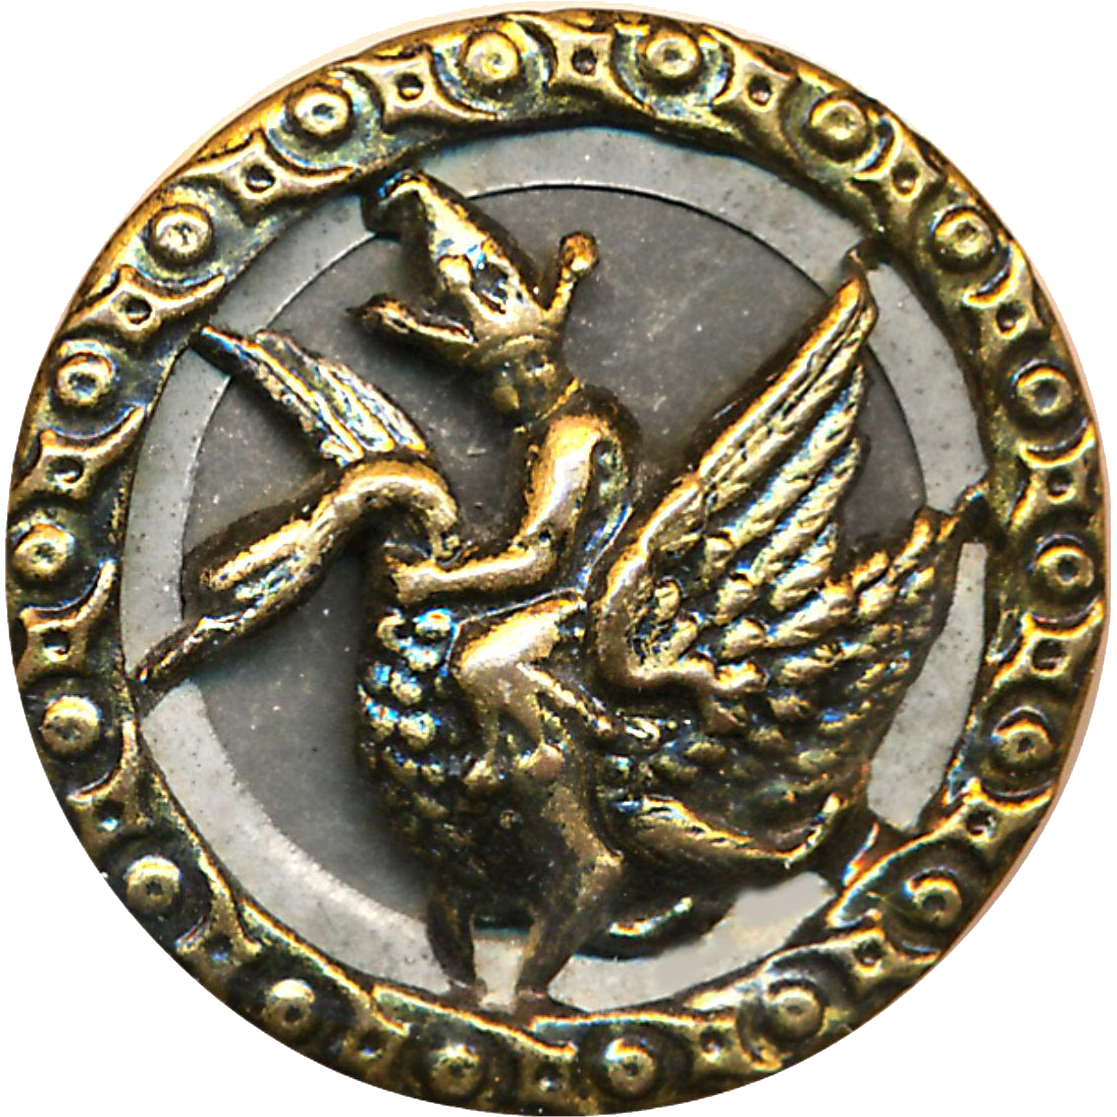 Button--Uncommon Medium Size 19th C. Tiny Jester Riding Swan